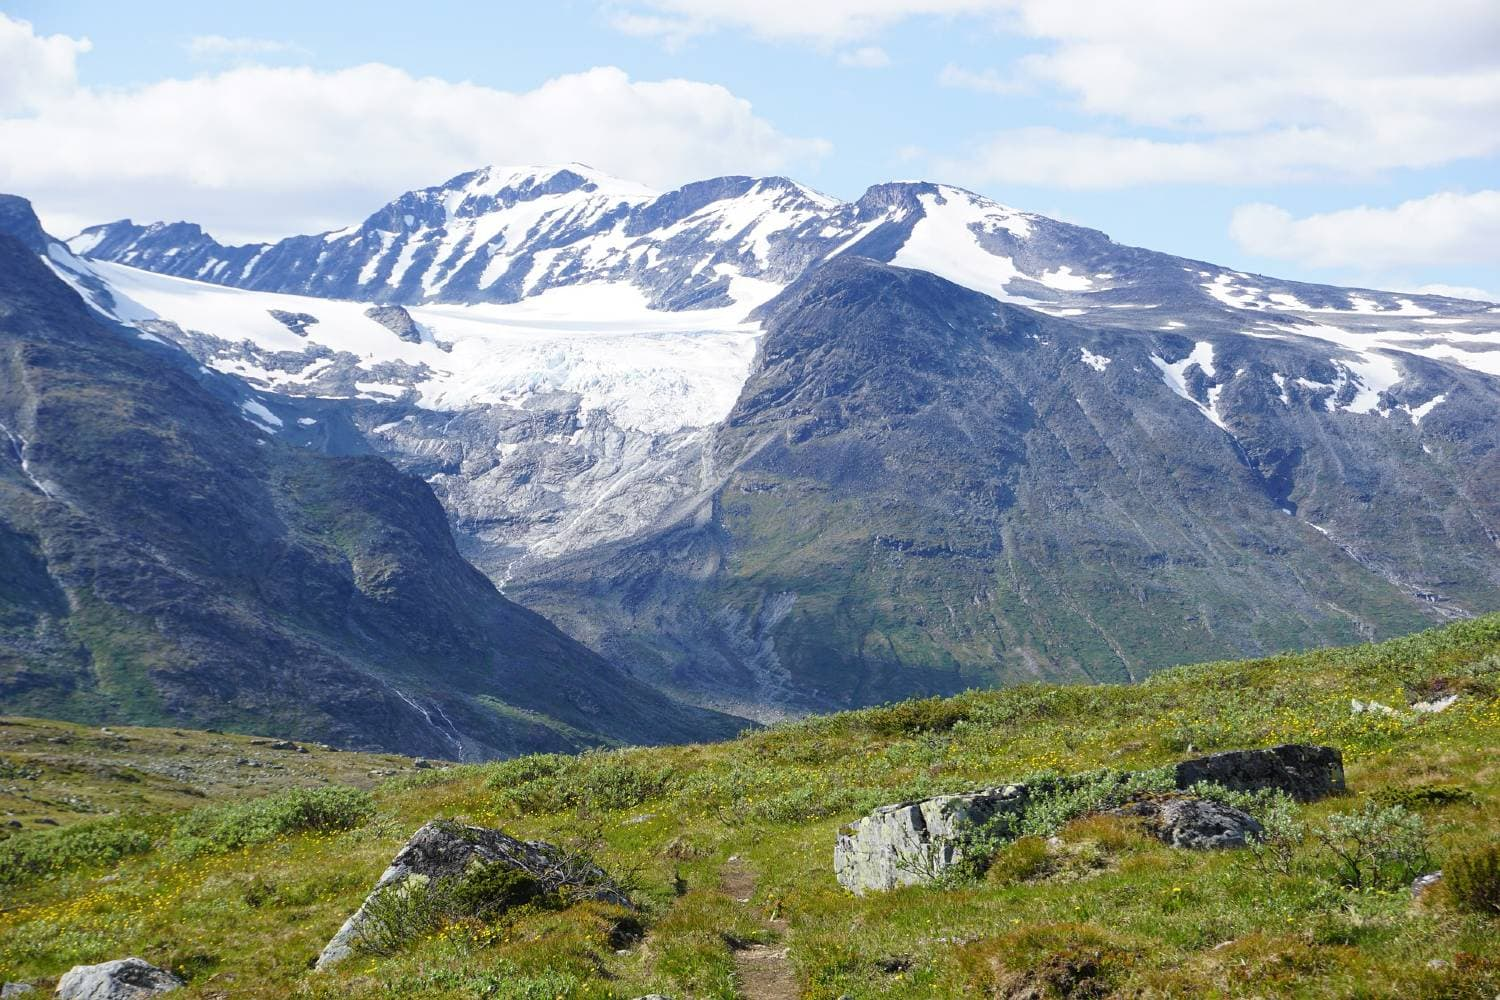 Jotunheimen national park and Galdhøpiggen mountains in Norway